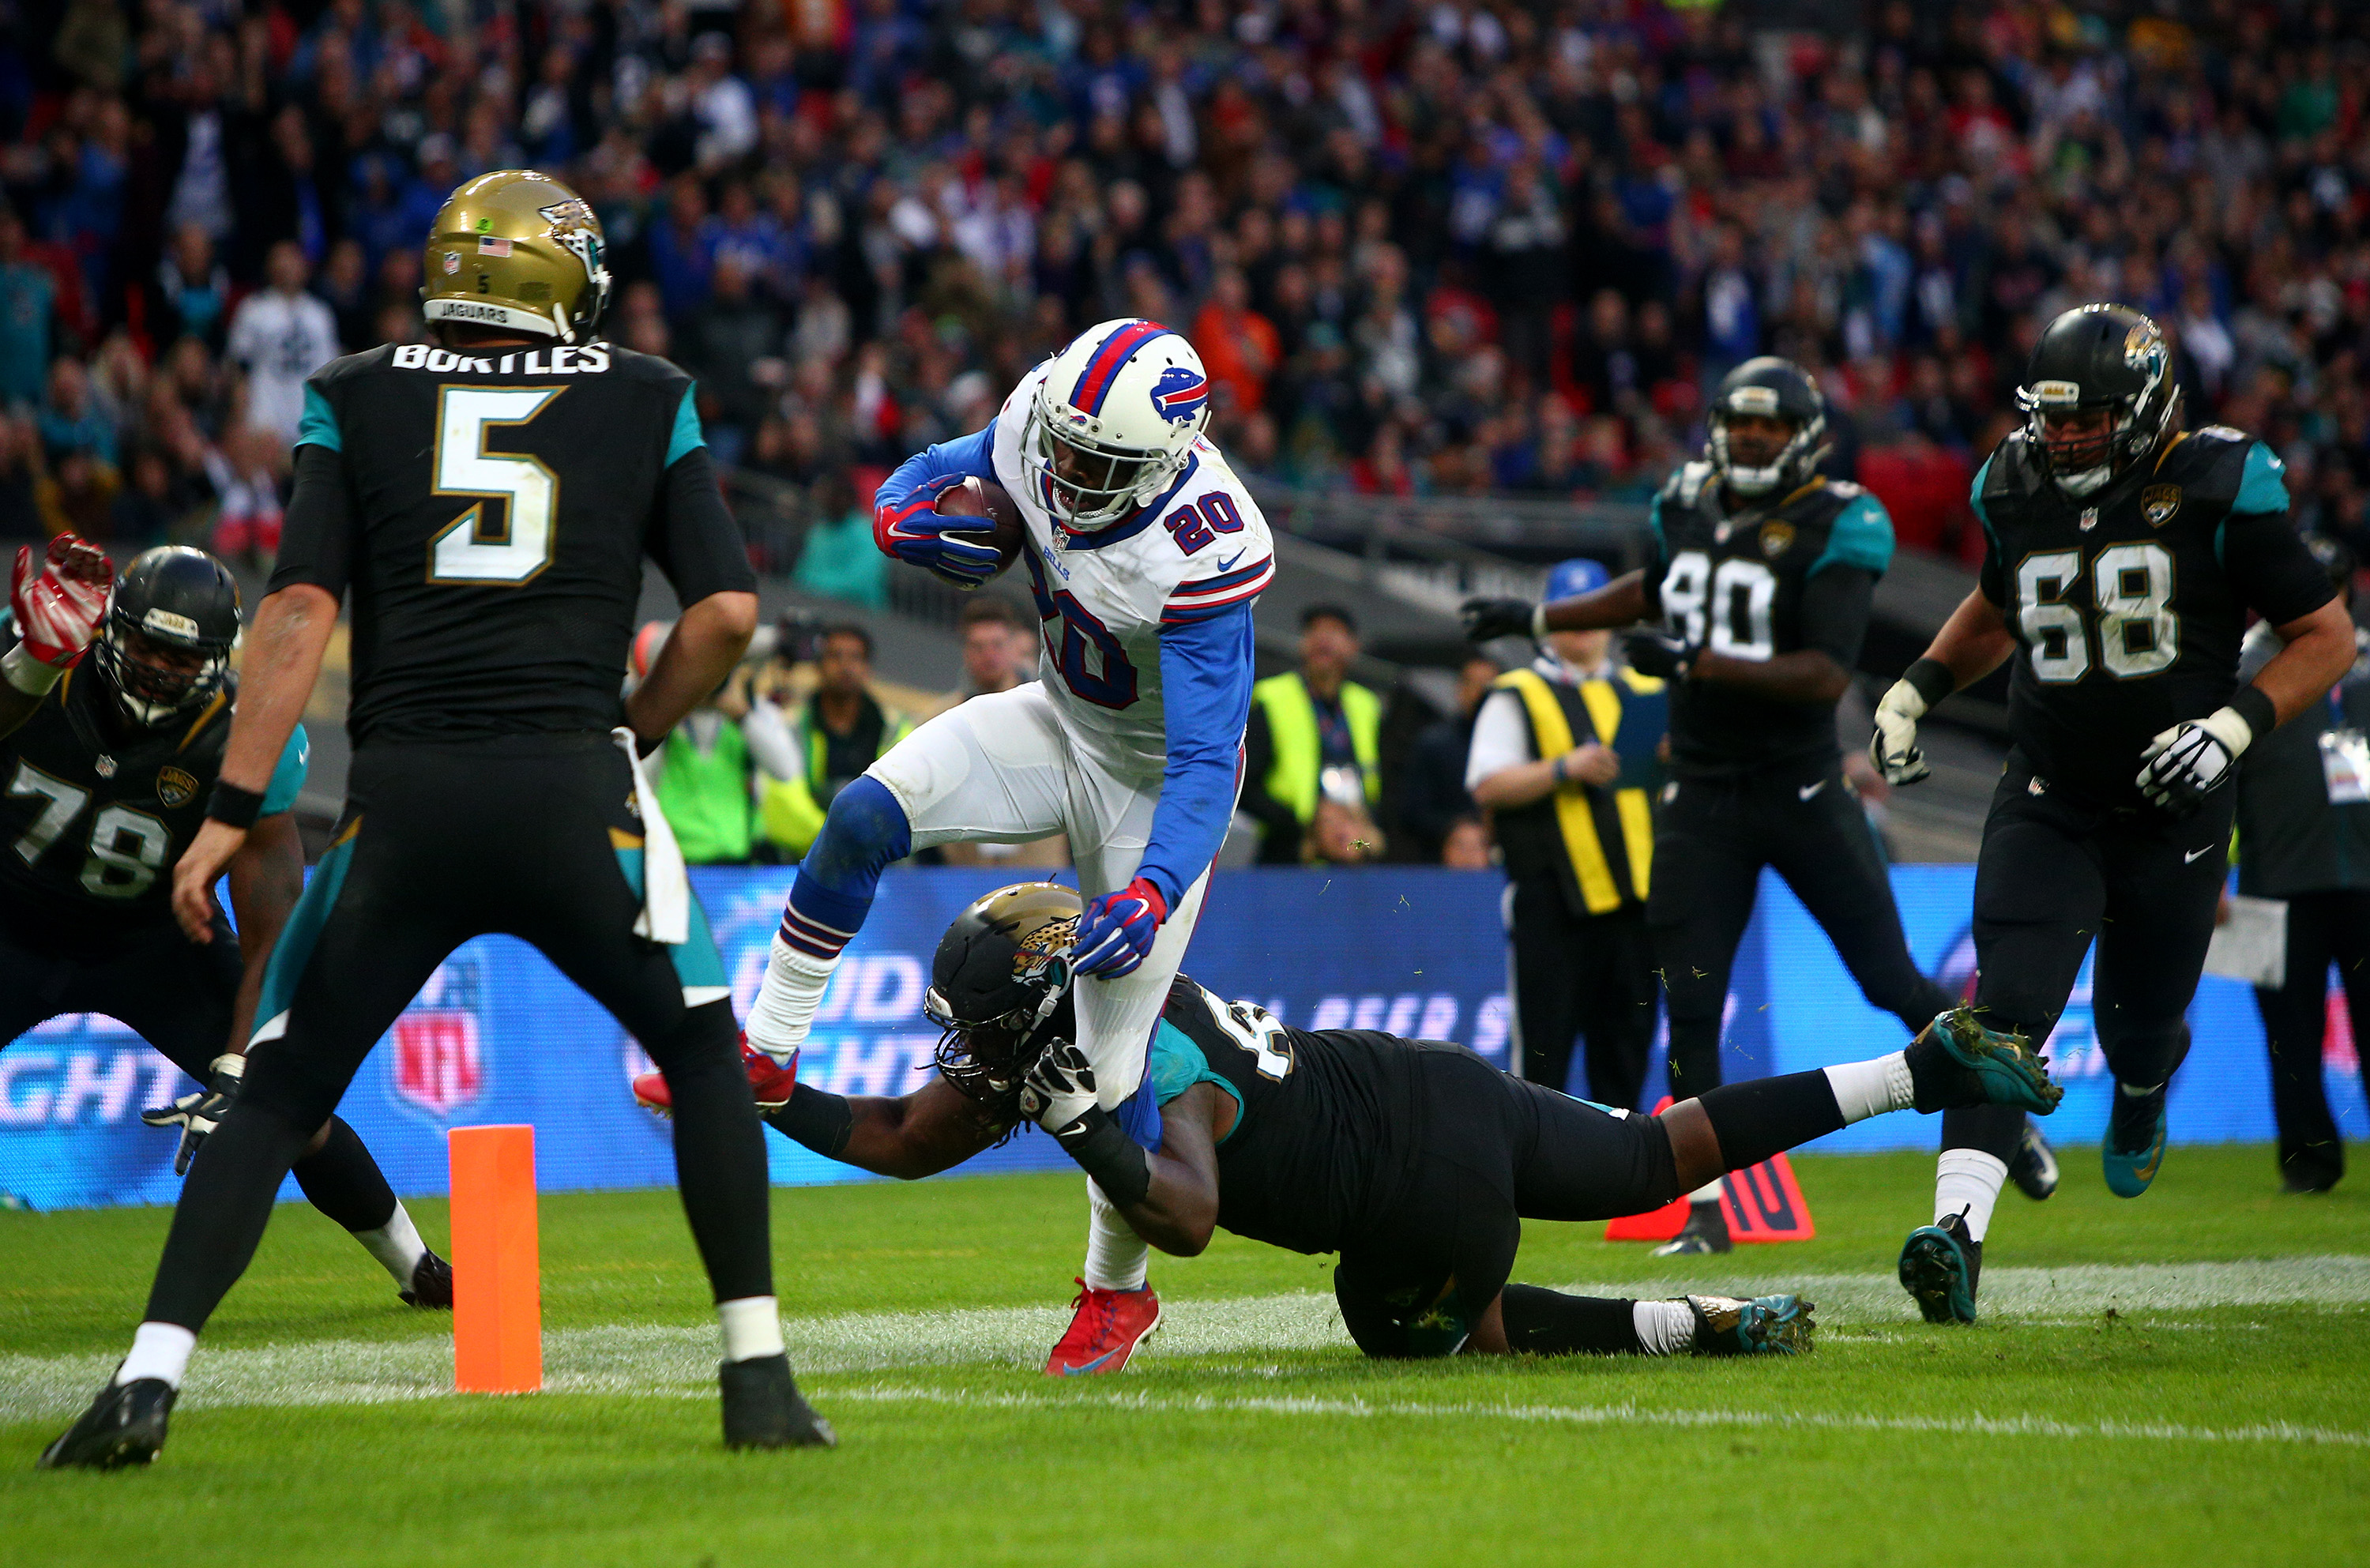 Corey Graham had an interception return for a touchdown in the Bills' 2015 loss against Jacksonville at London. (Getty Images)